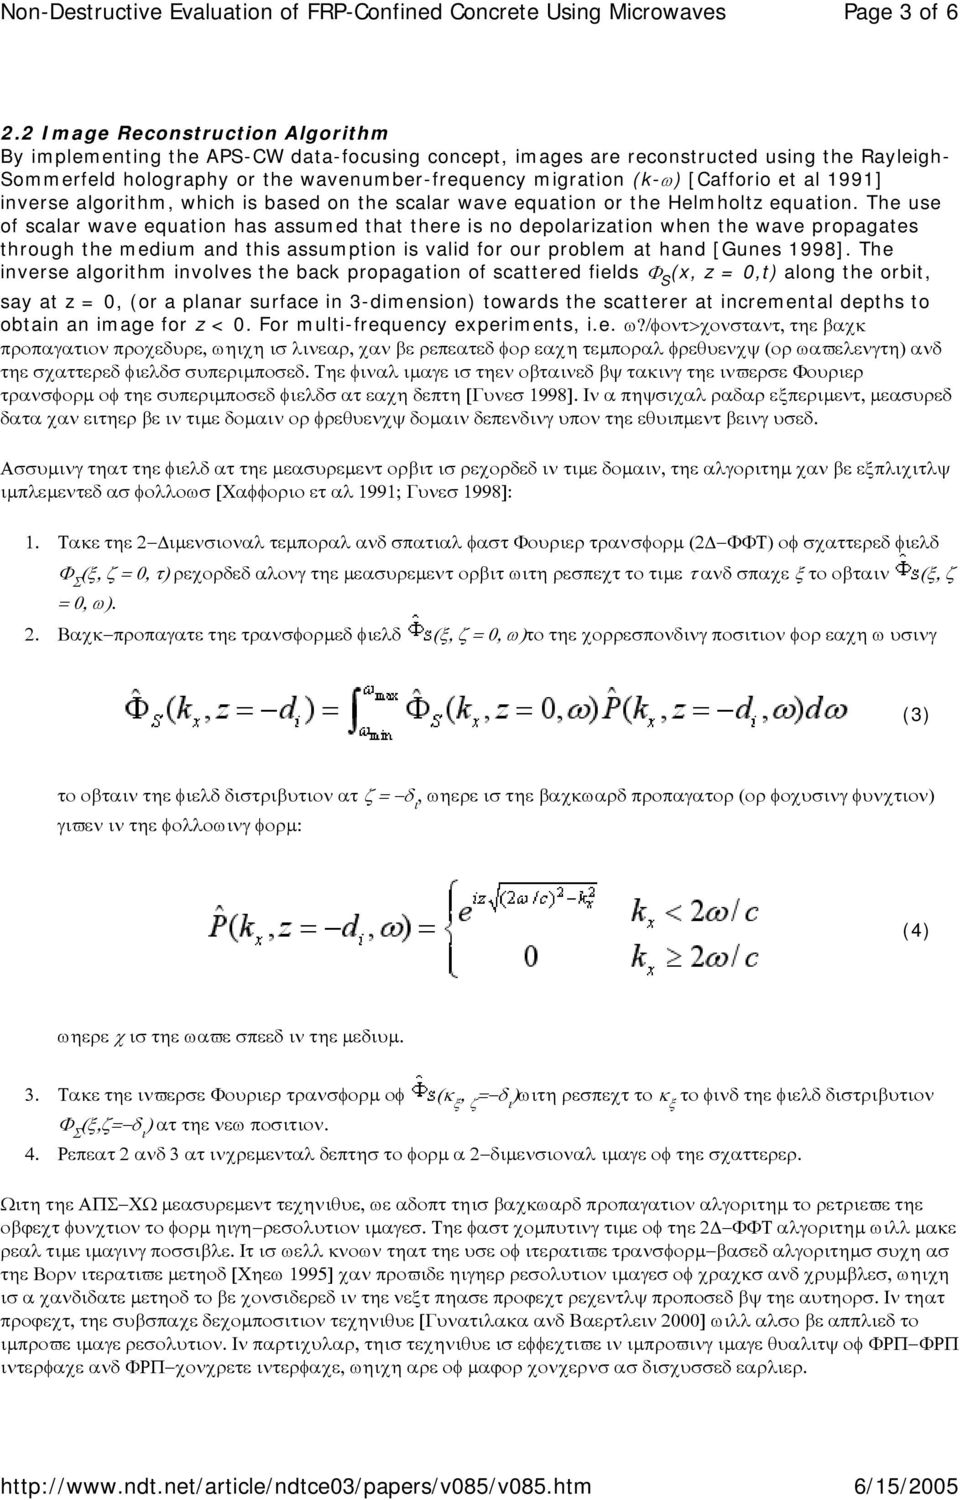 [Cafforio et al 1991] inverse algorithm, which is based on the scalar wave equation or the Helmholtz equation.